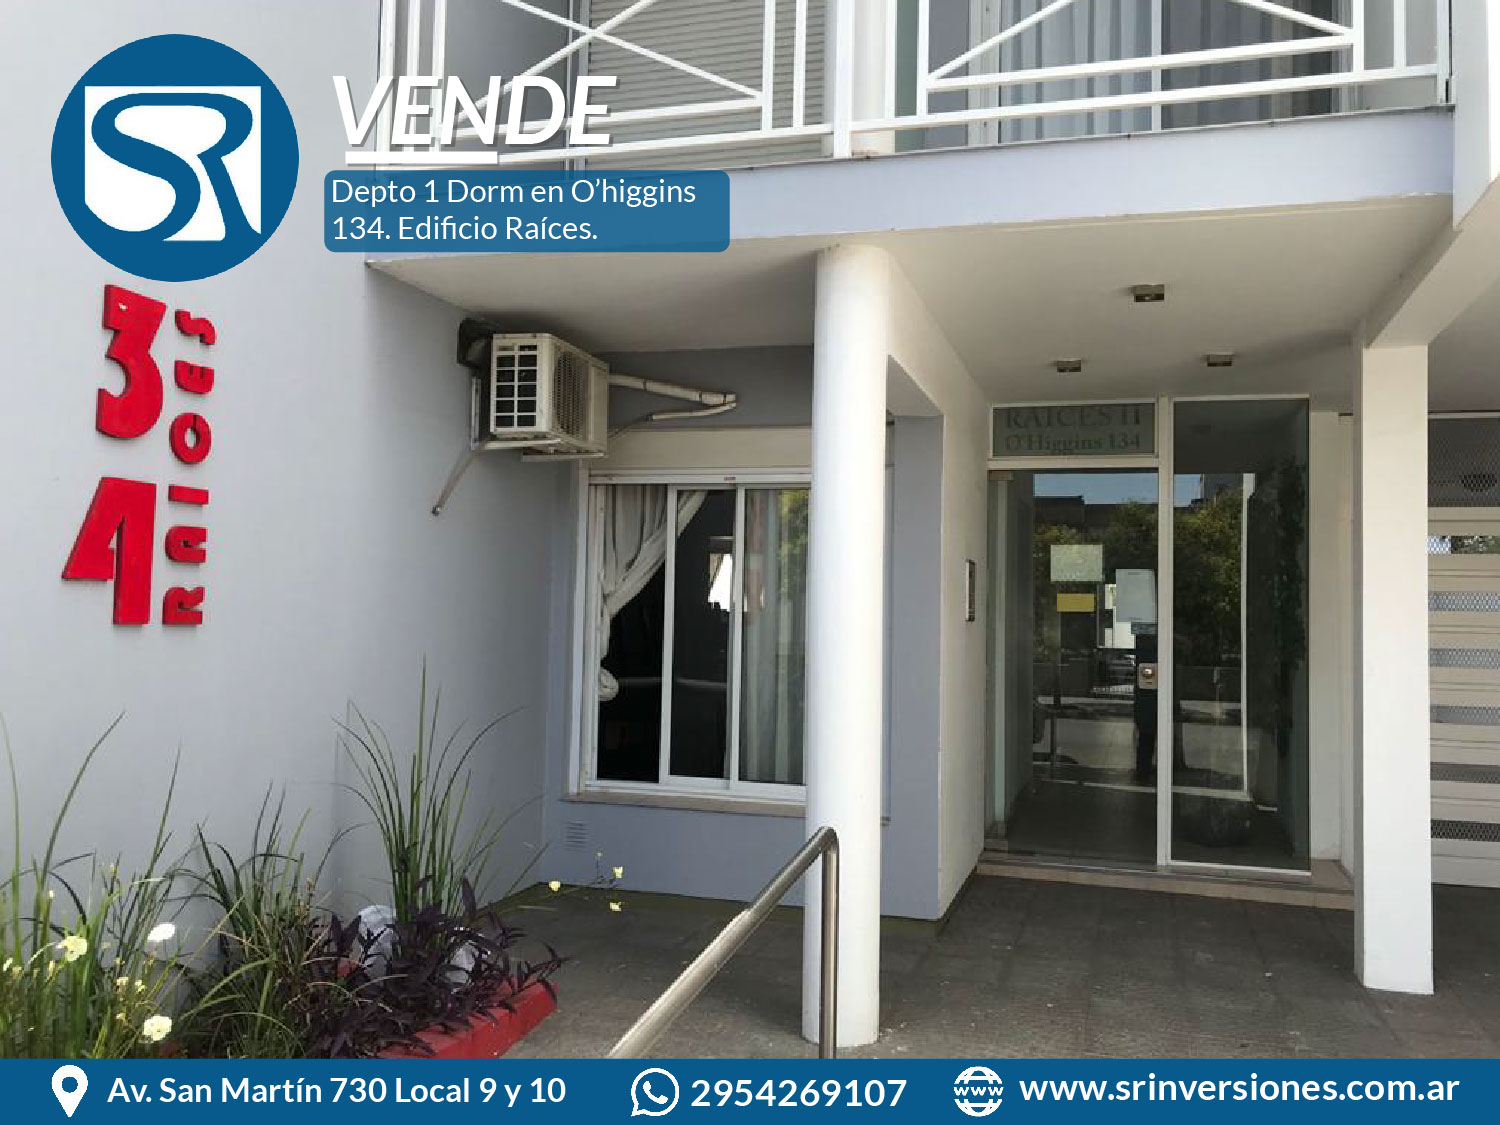 VENDE DEPTO 1 DORM en O'HIGGINS 134. Santa Rosa, LP.